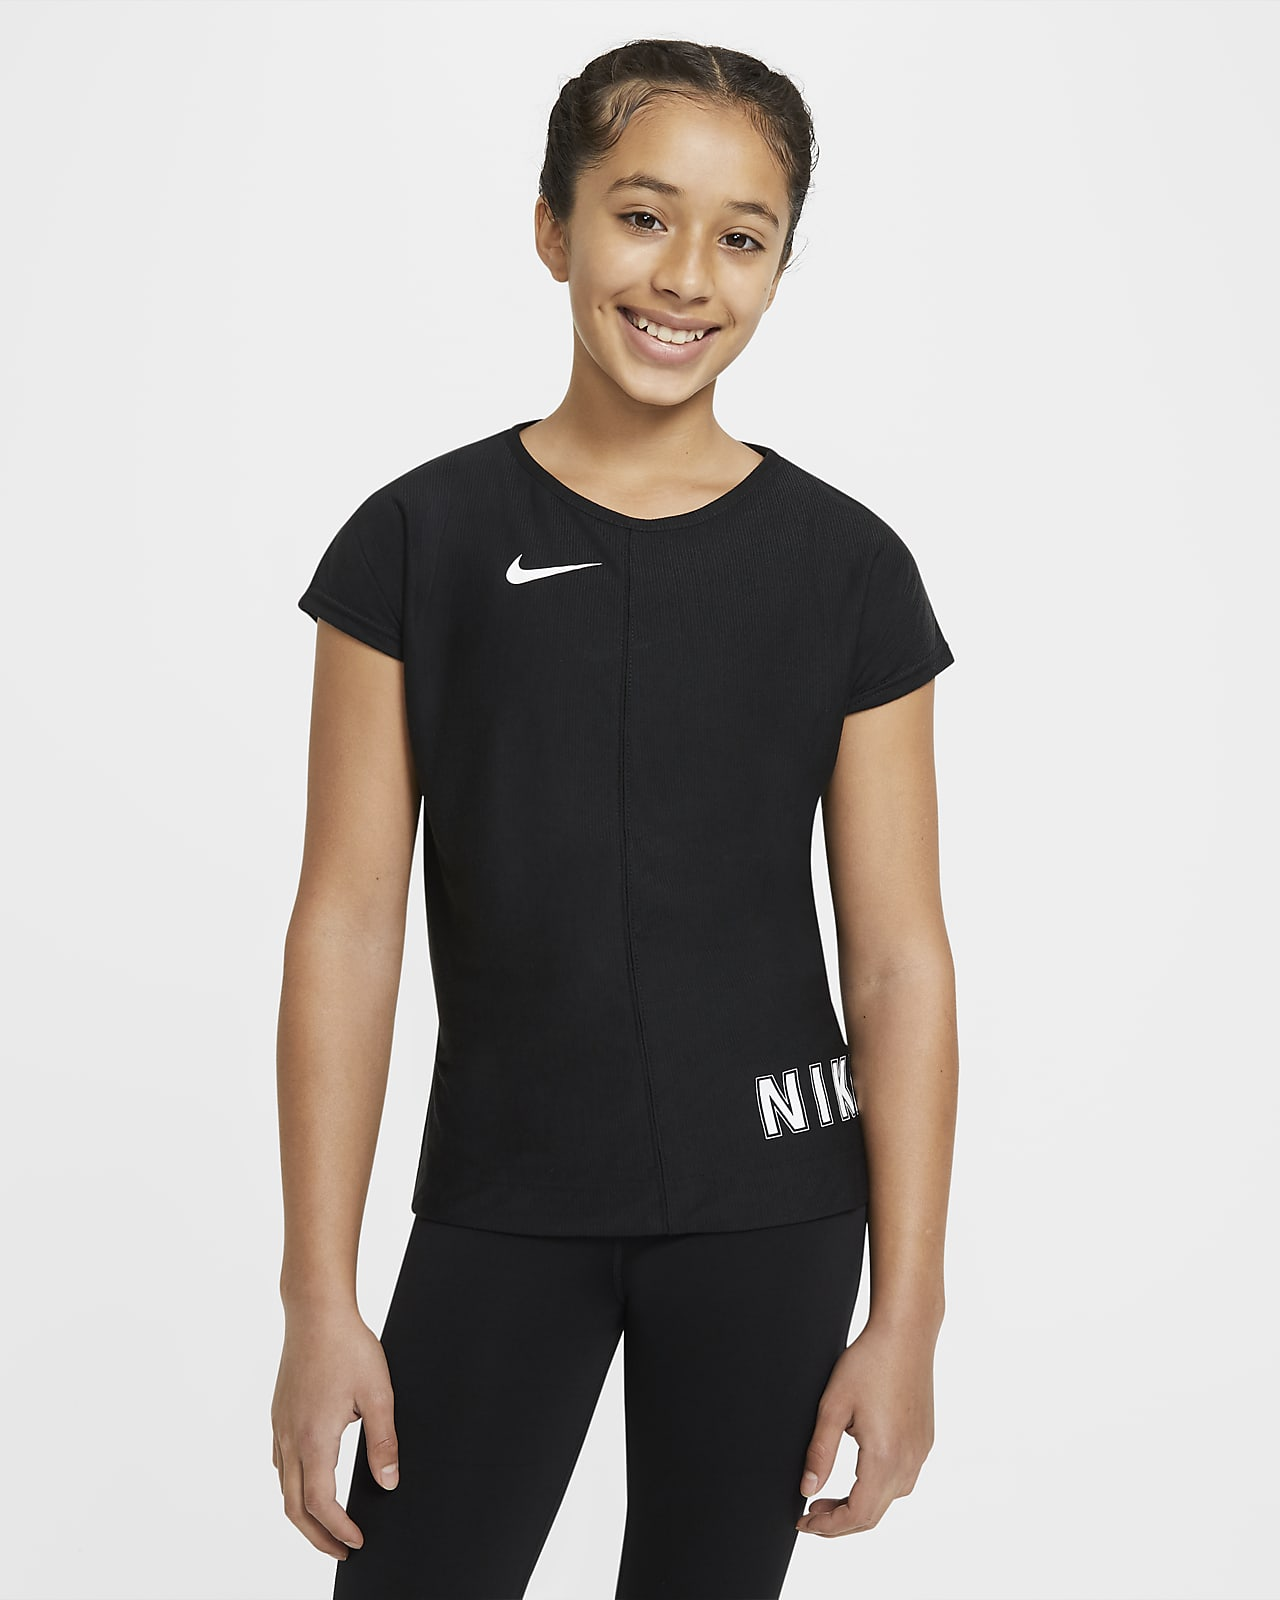 Nike Big Kids' (Girls') Training Top